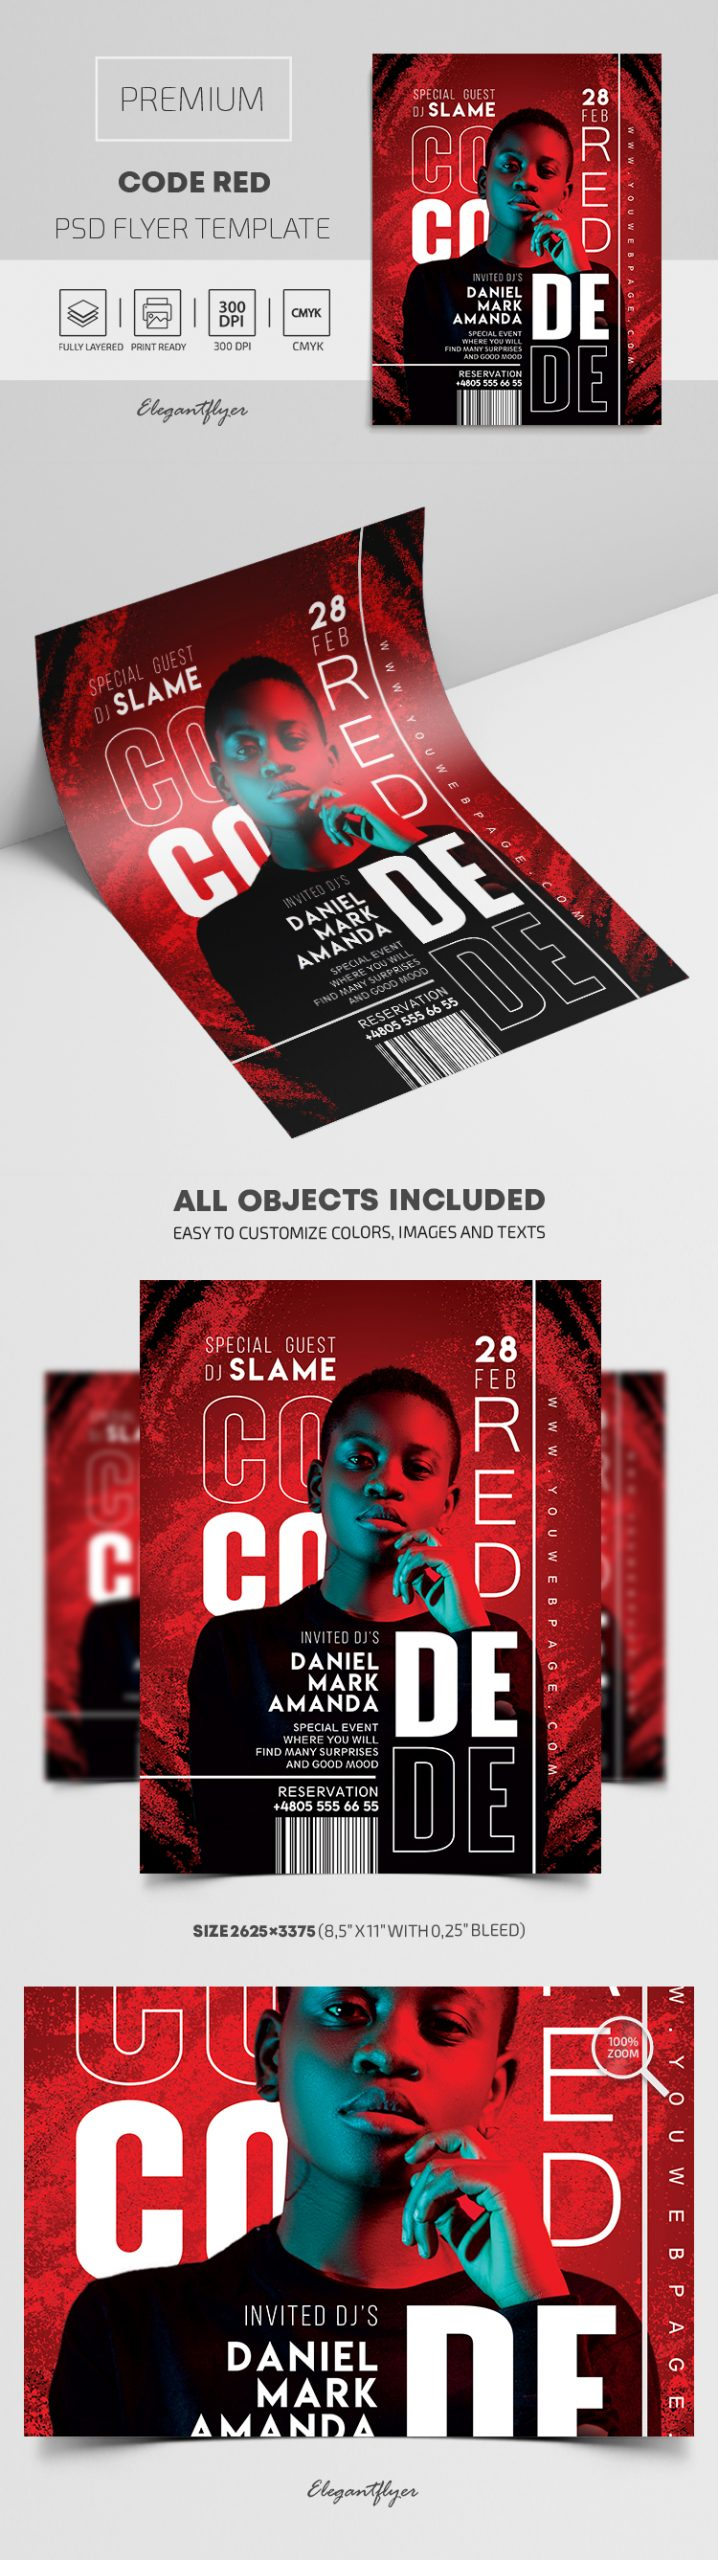 Code Red – Premium PSD Flyer Template